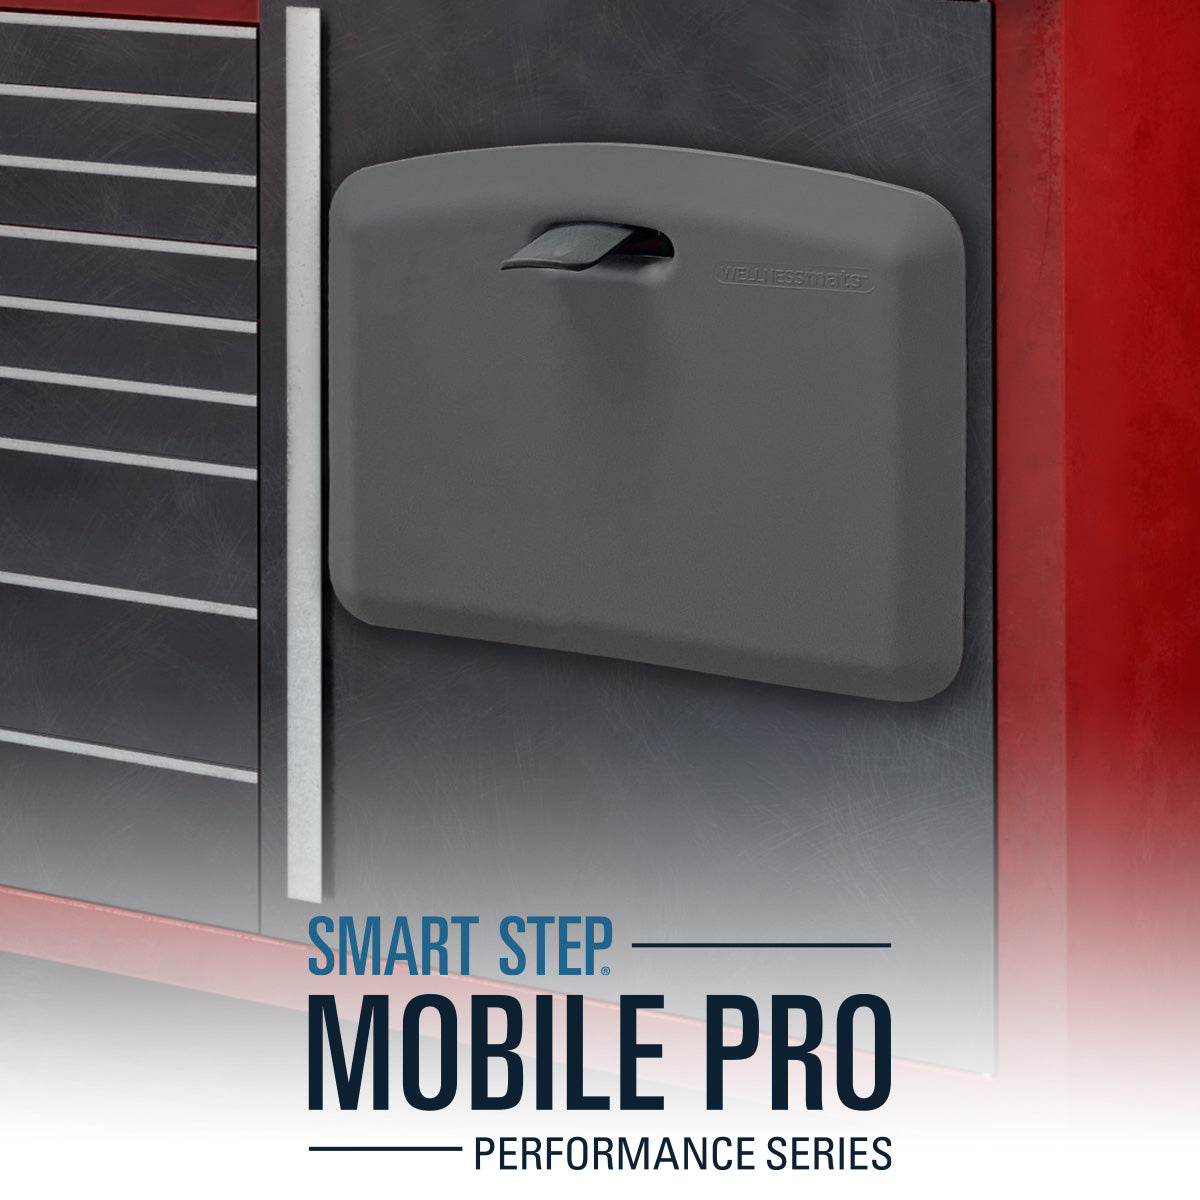 Smart Step Mobile Pro